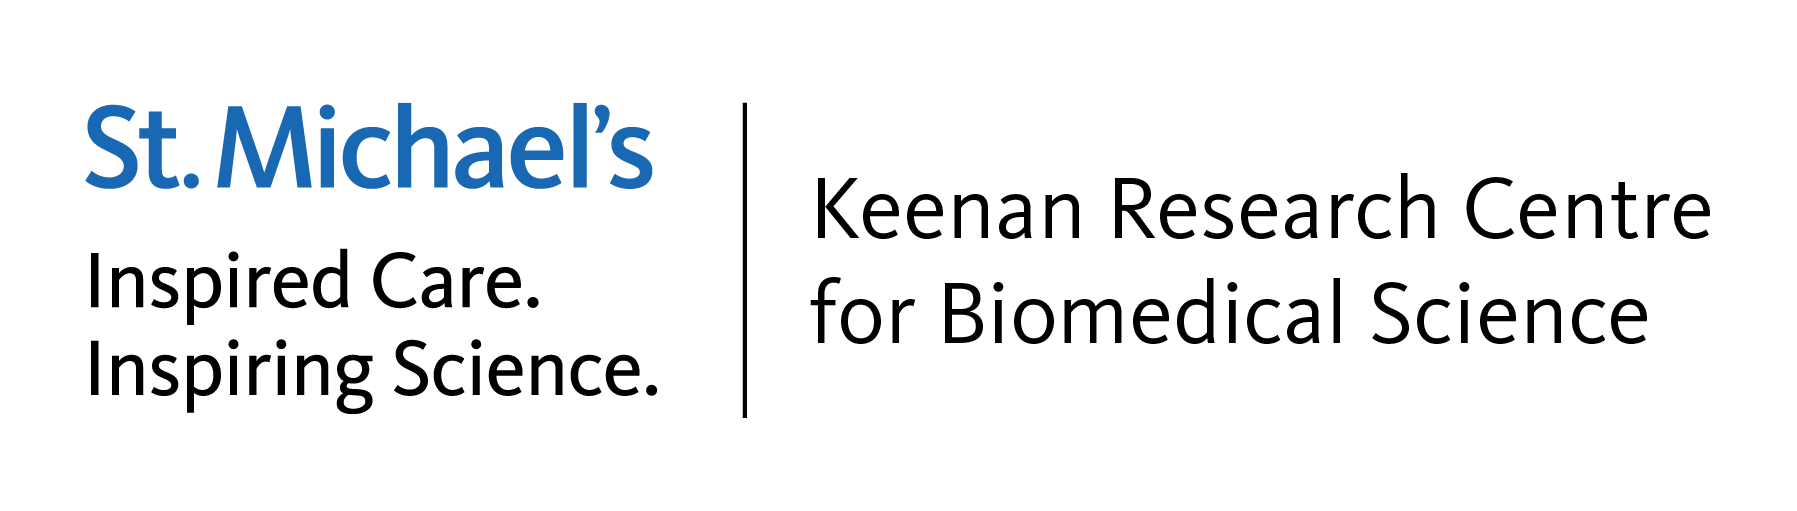 st._mikes_keenan_research_biomedical_science_wordmark_final-01.png